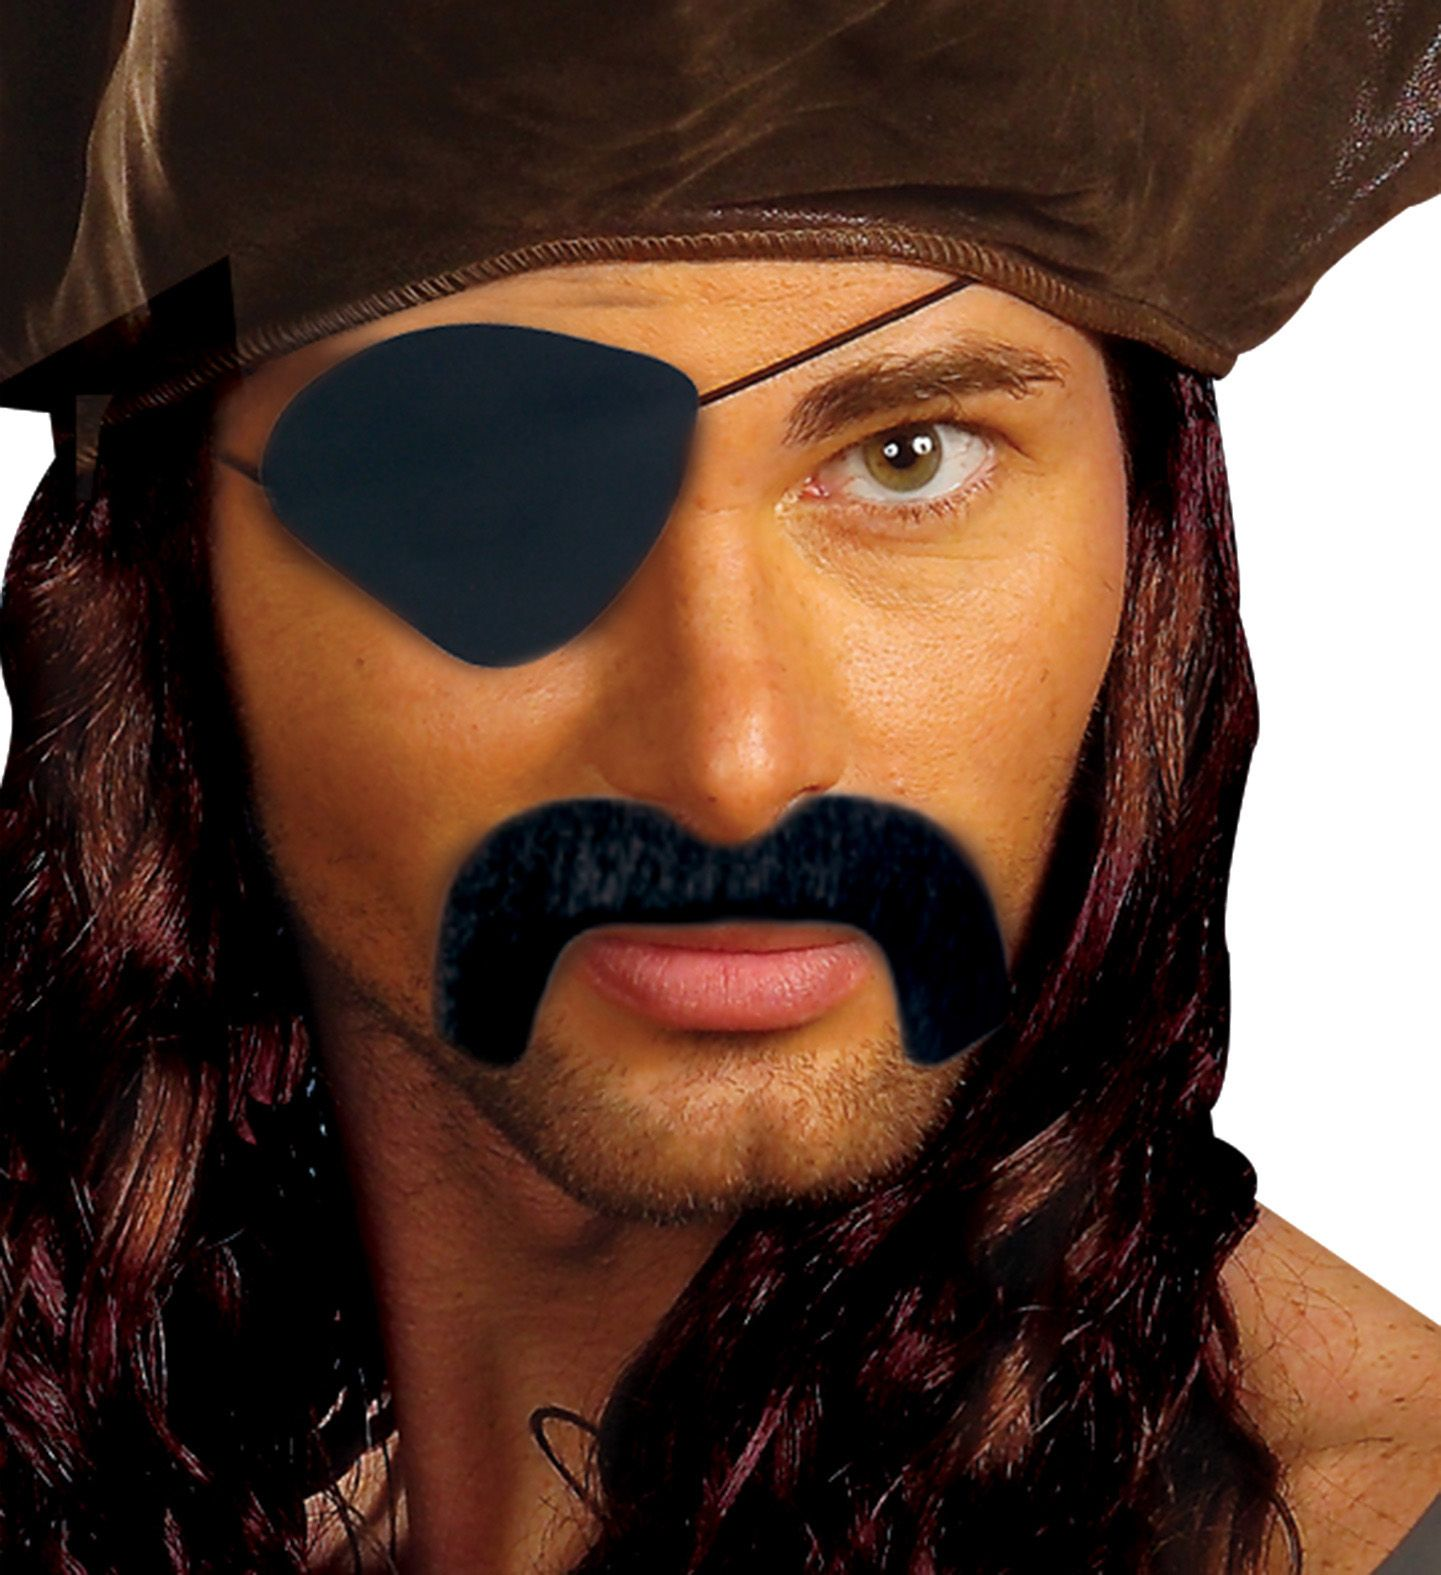 Piratensnor met ooglap